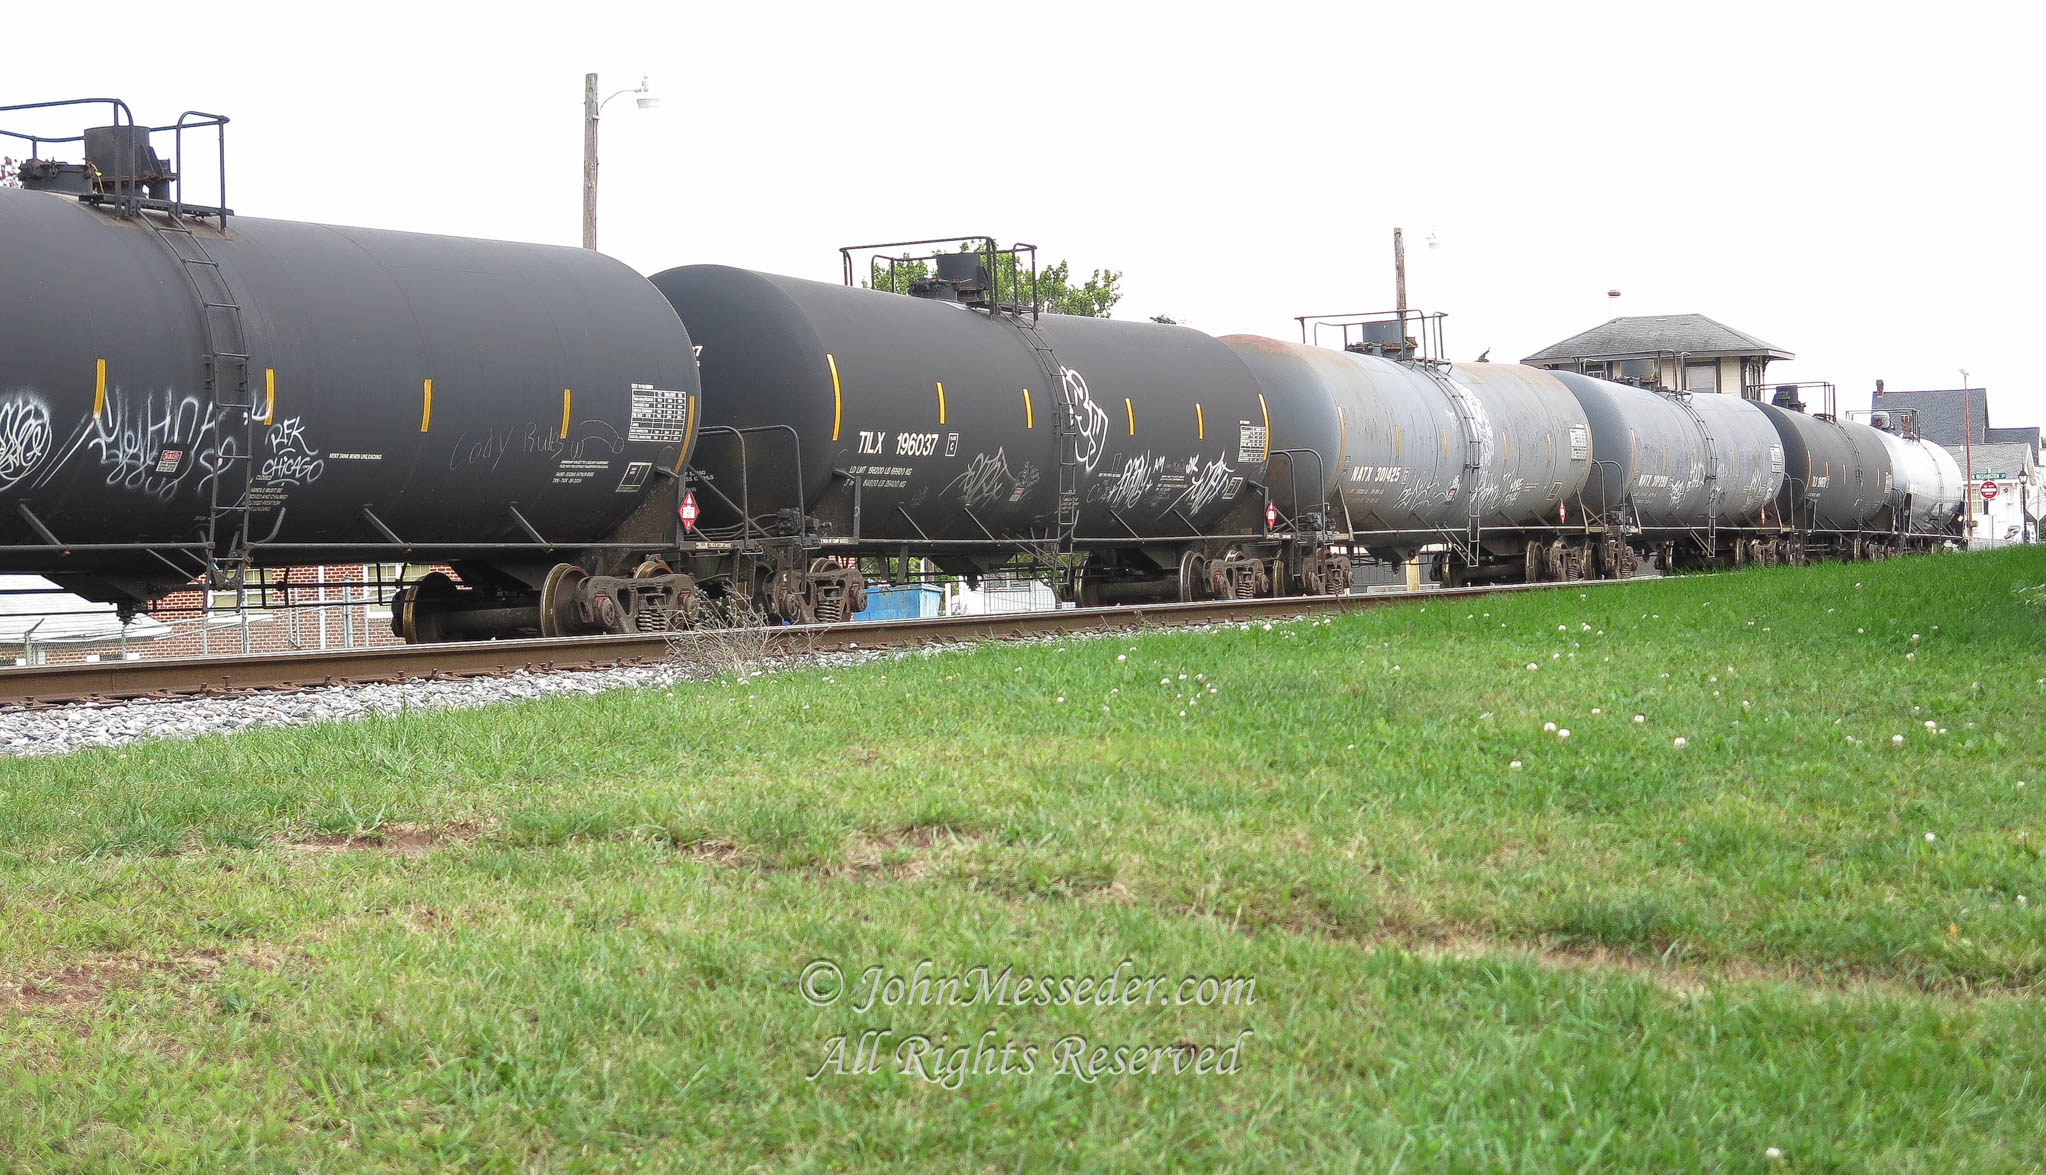 A line of 30,000 gallon railway tankers